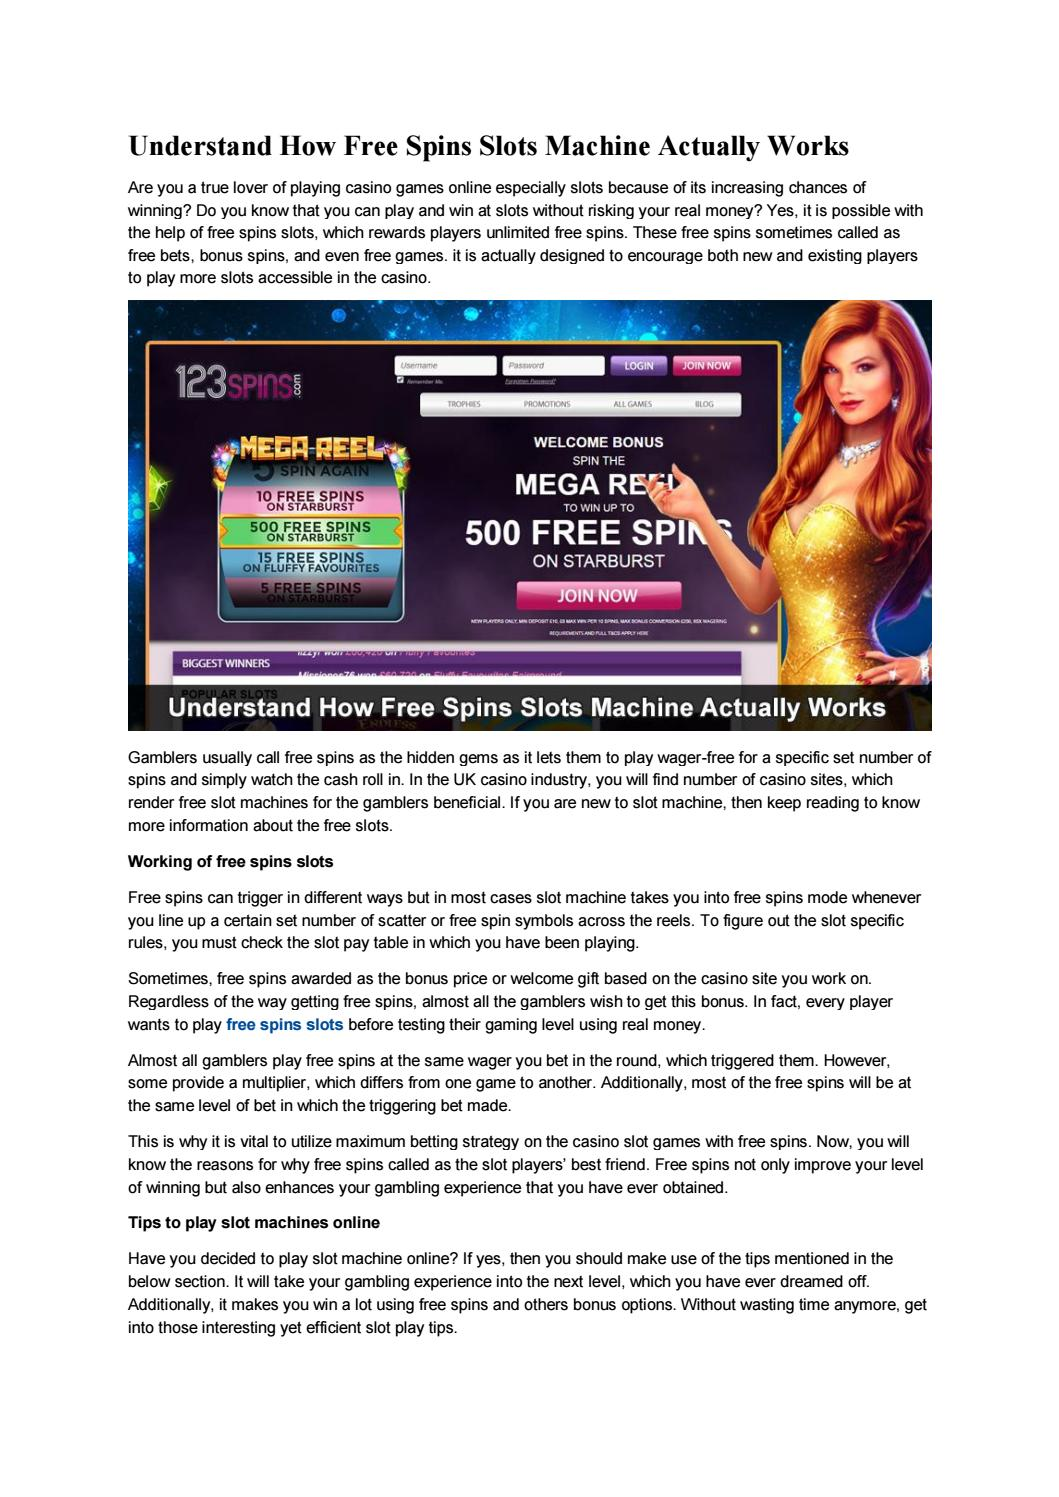 Understand How Free Spins Slots Machine Actually Works By 123 Spins Issuu